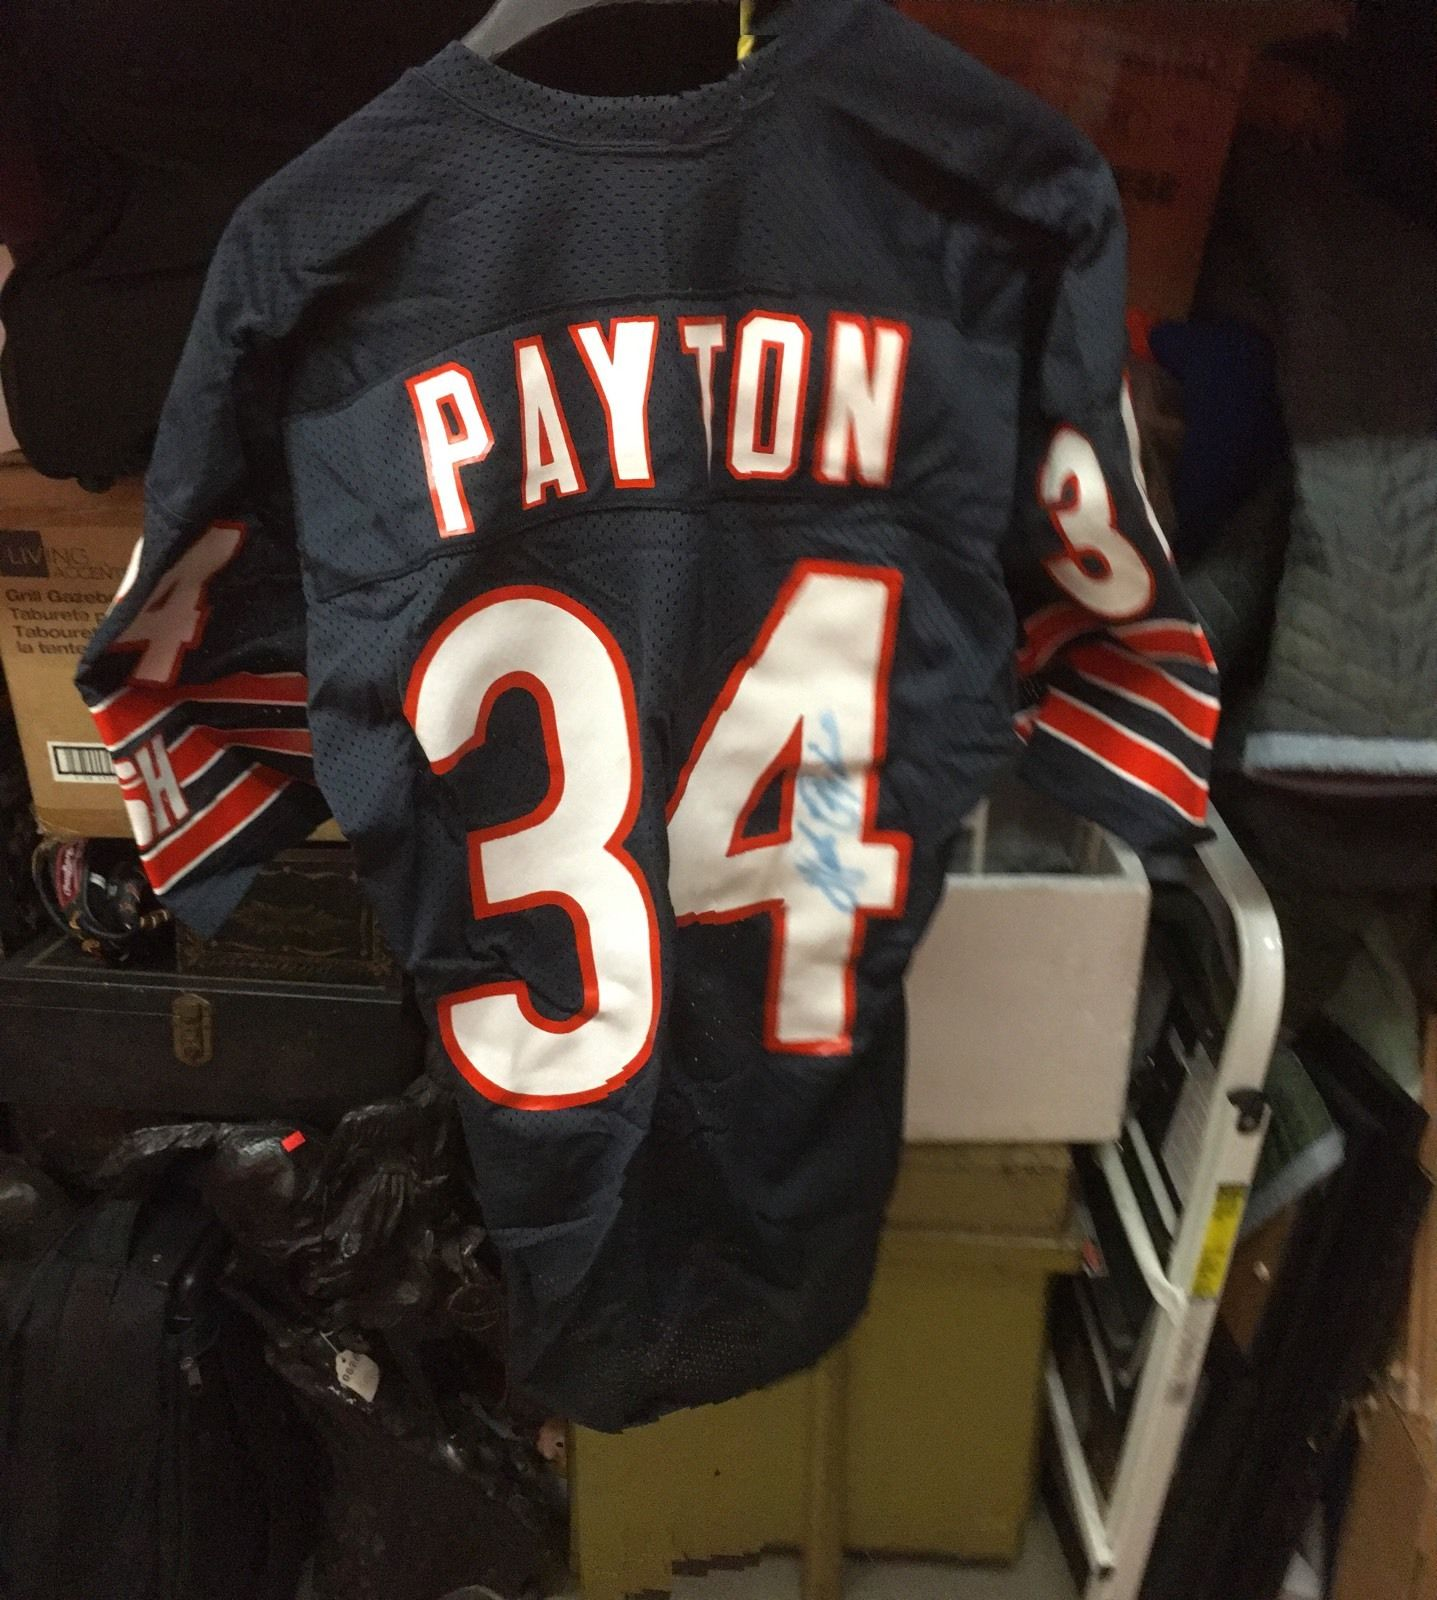 fb5b5e20388 Walter Payton Chicago Bears Game Used Signed Jersey Circa 1984-86 PSA/DNA  Authentication. Walter Payton Autograph Jersey